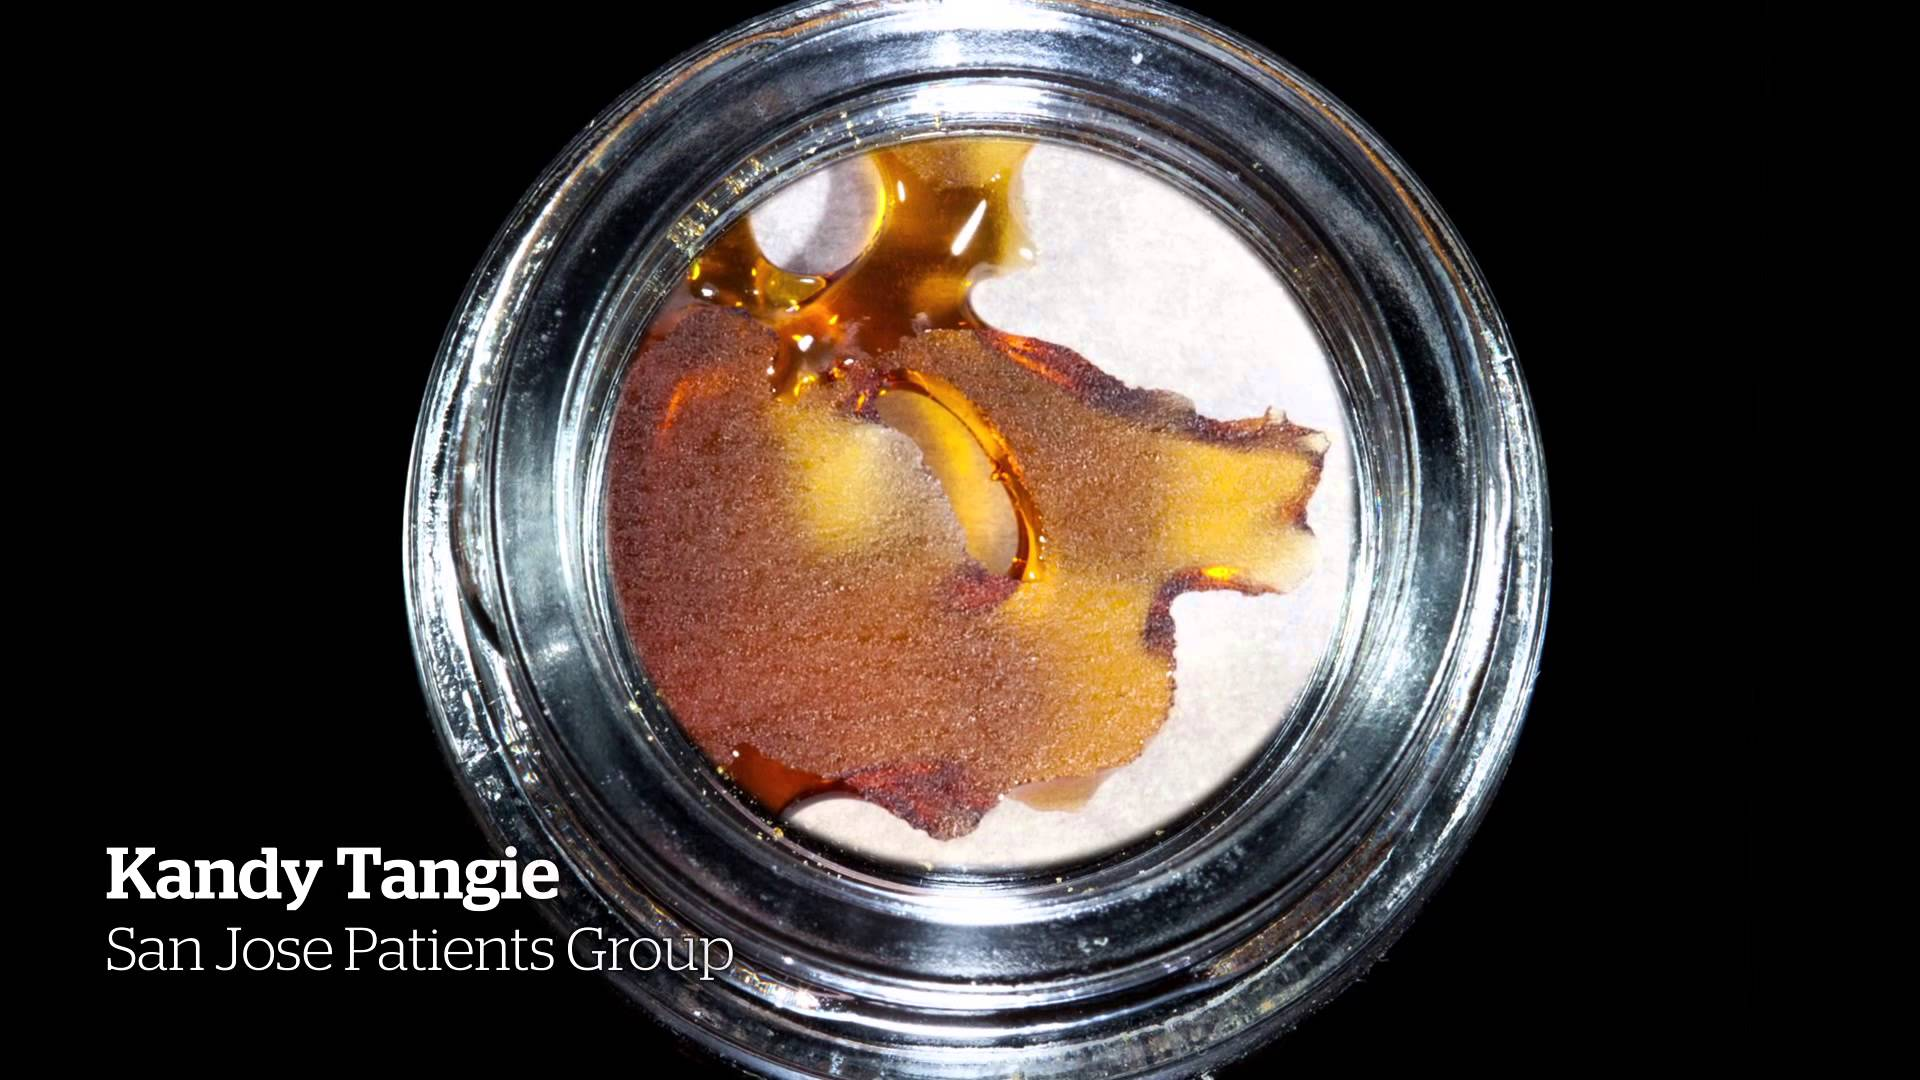 2014 HIGH TIMES SF Medical Cannabis Cup Concentrate Entries